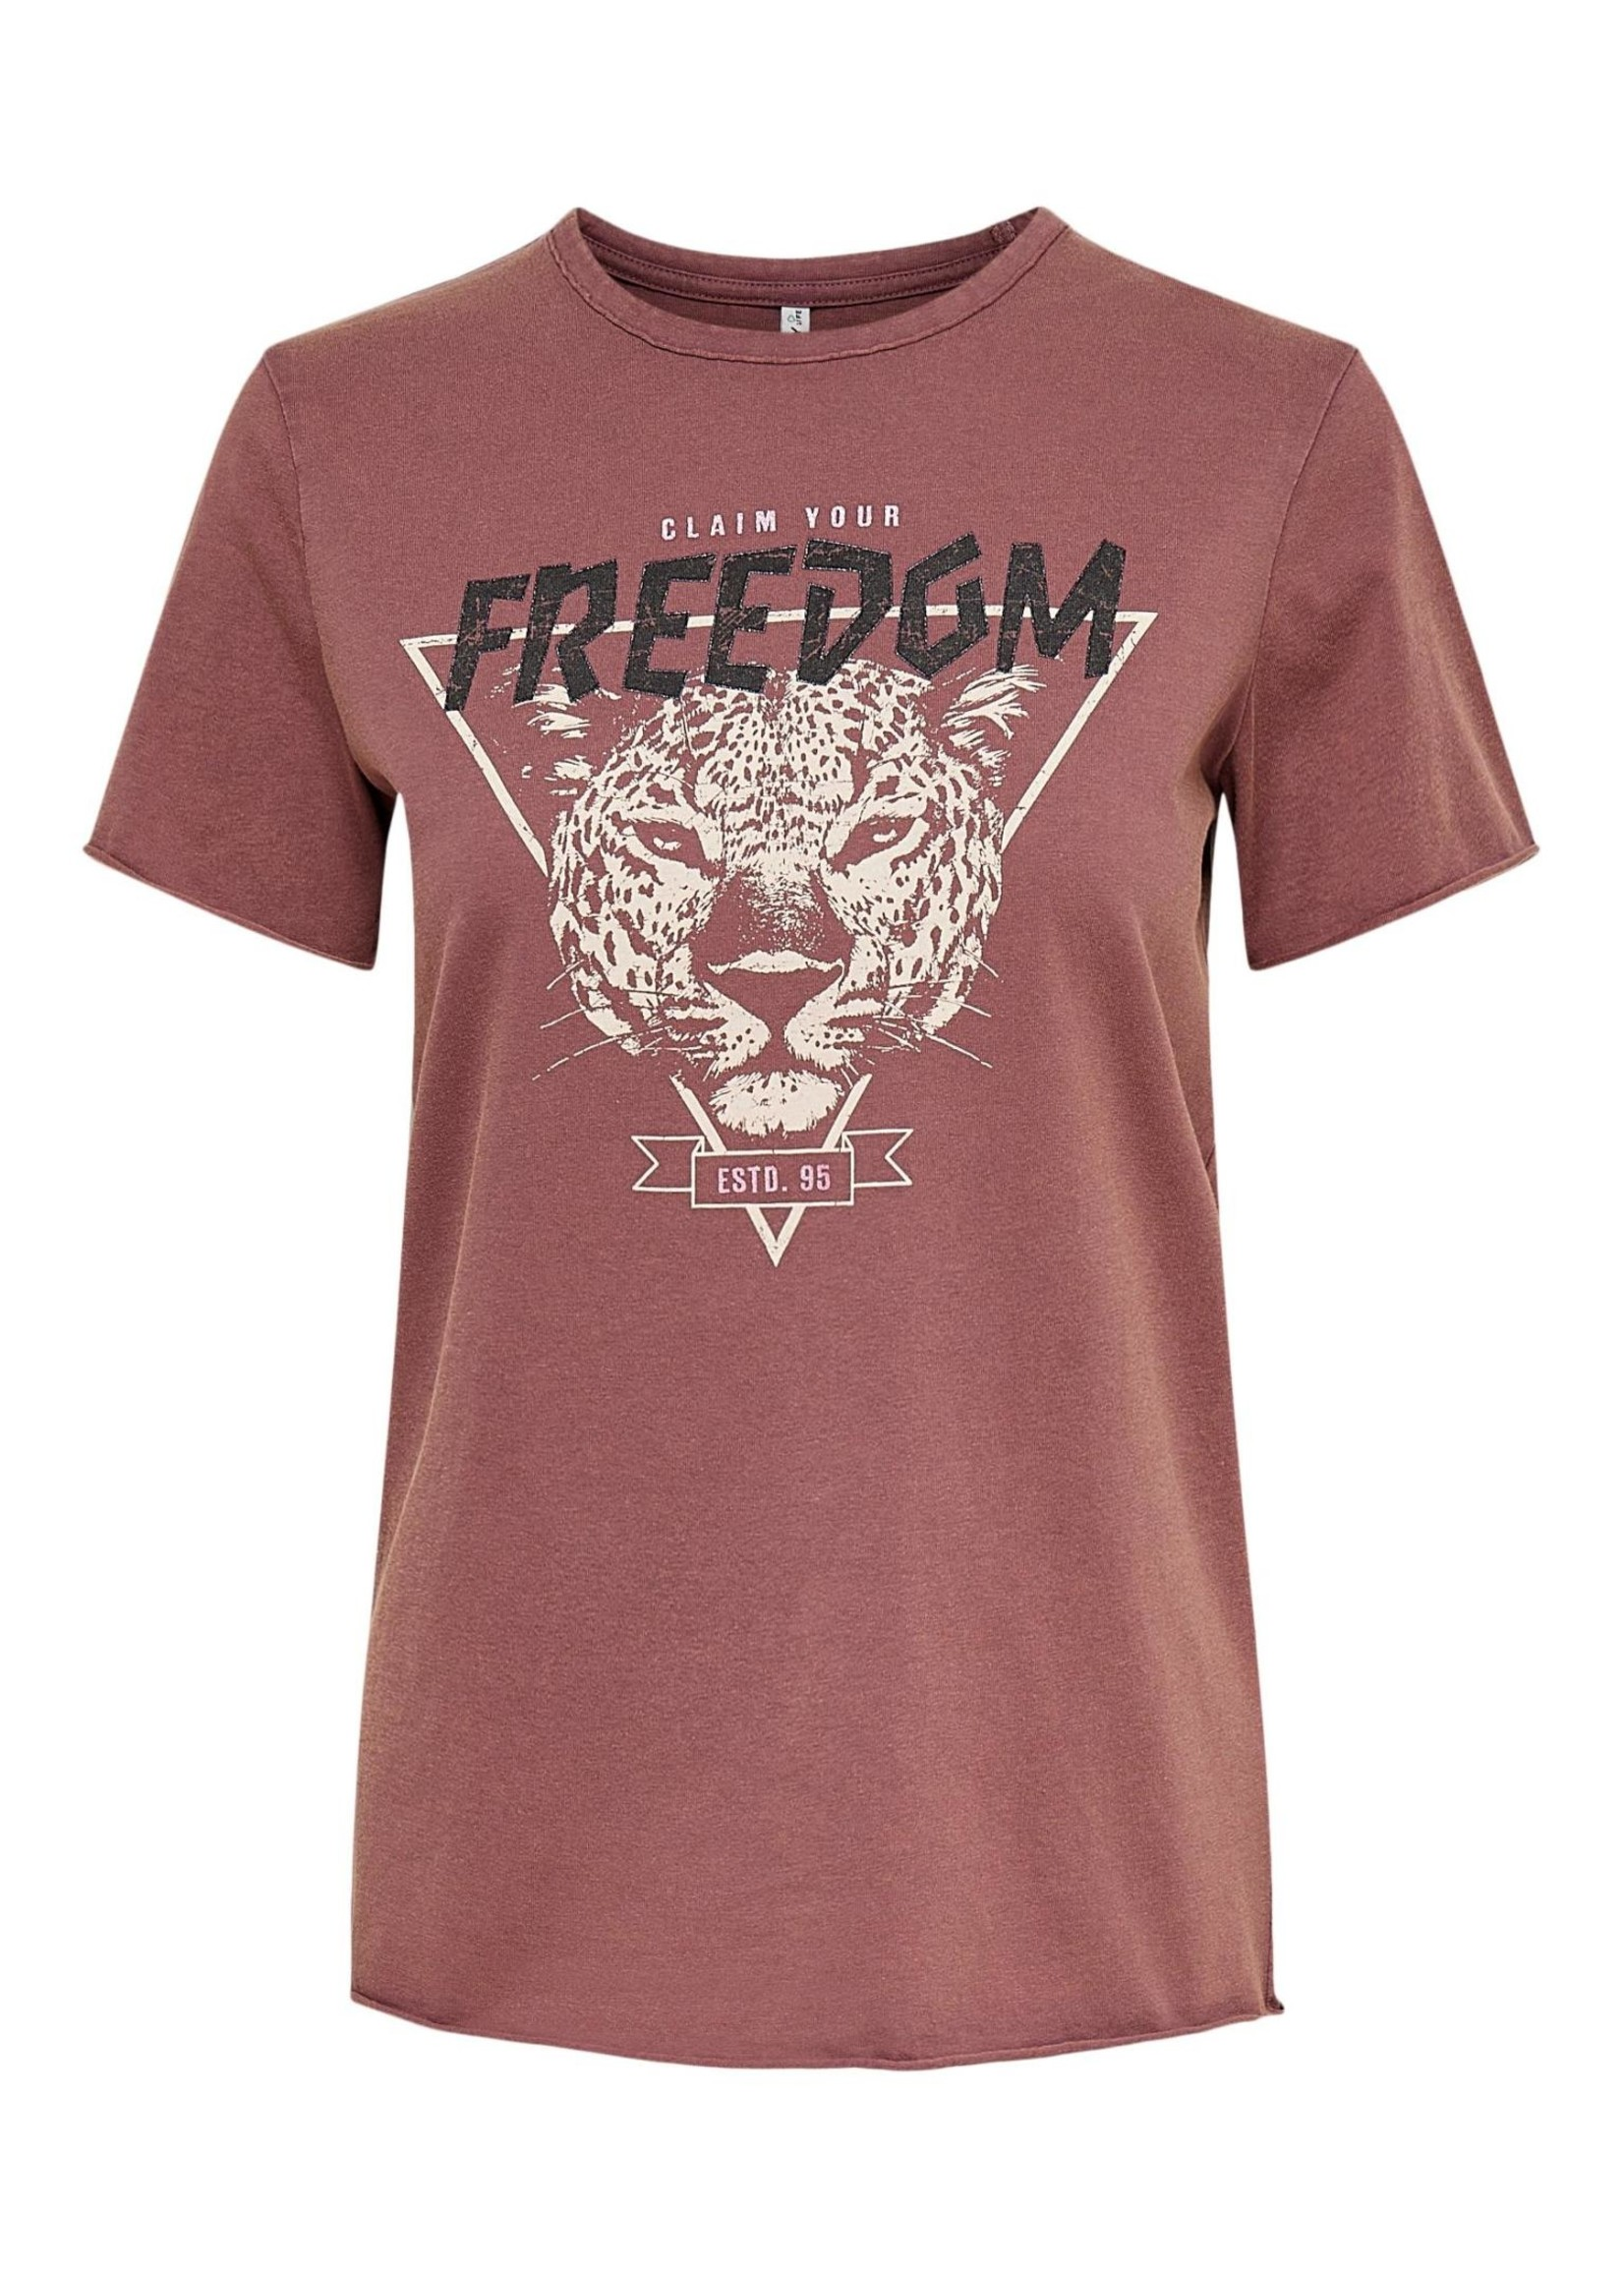 ONLY LUCY LIFE REG S/S ELECTRIC TOP JRS rose brown freedom